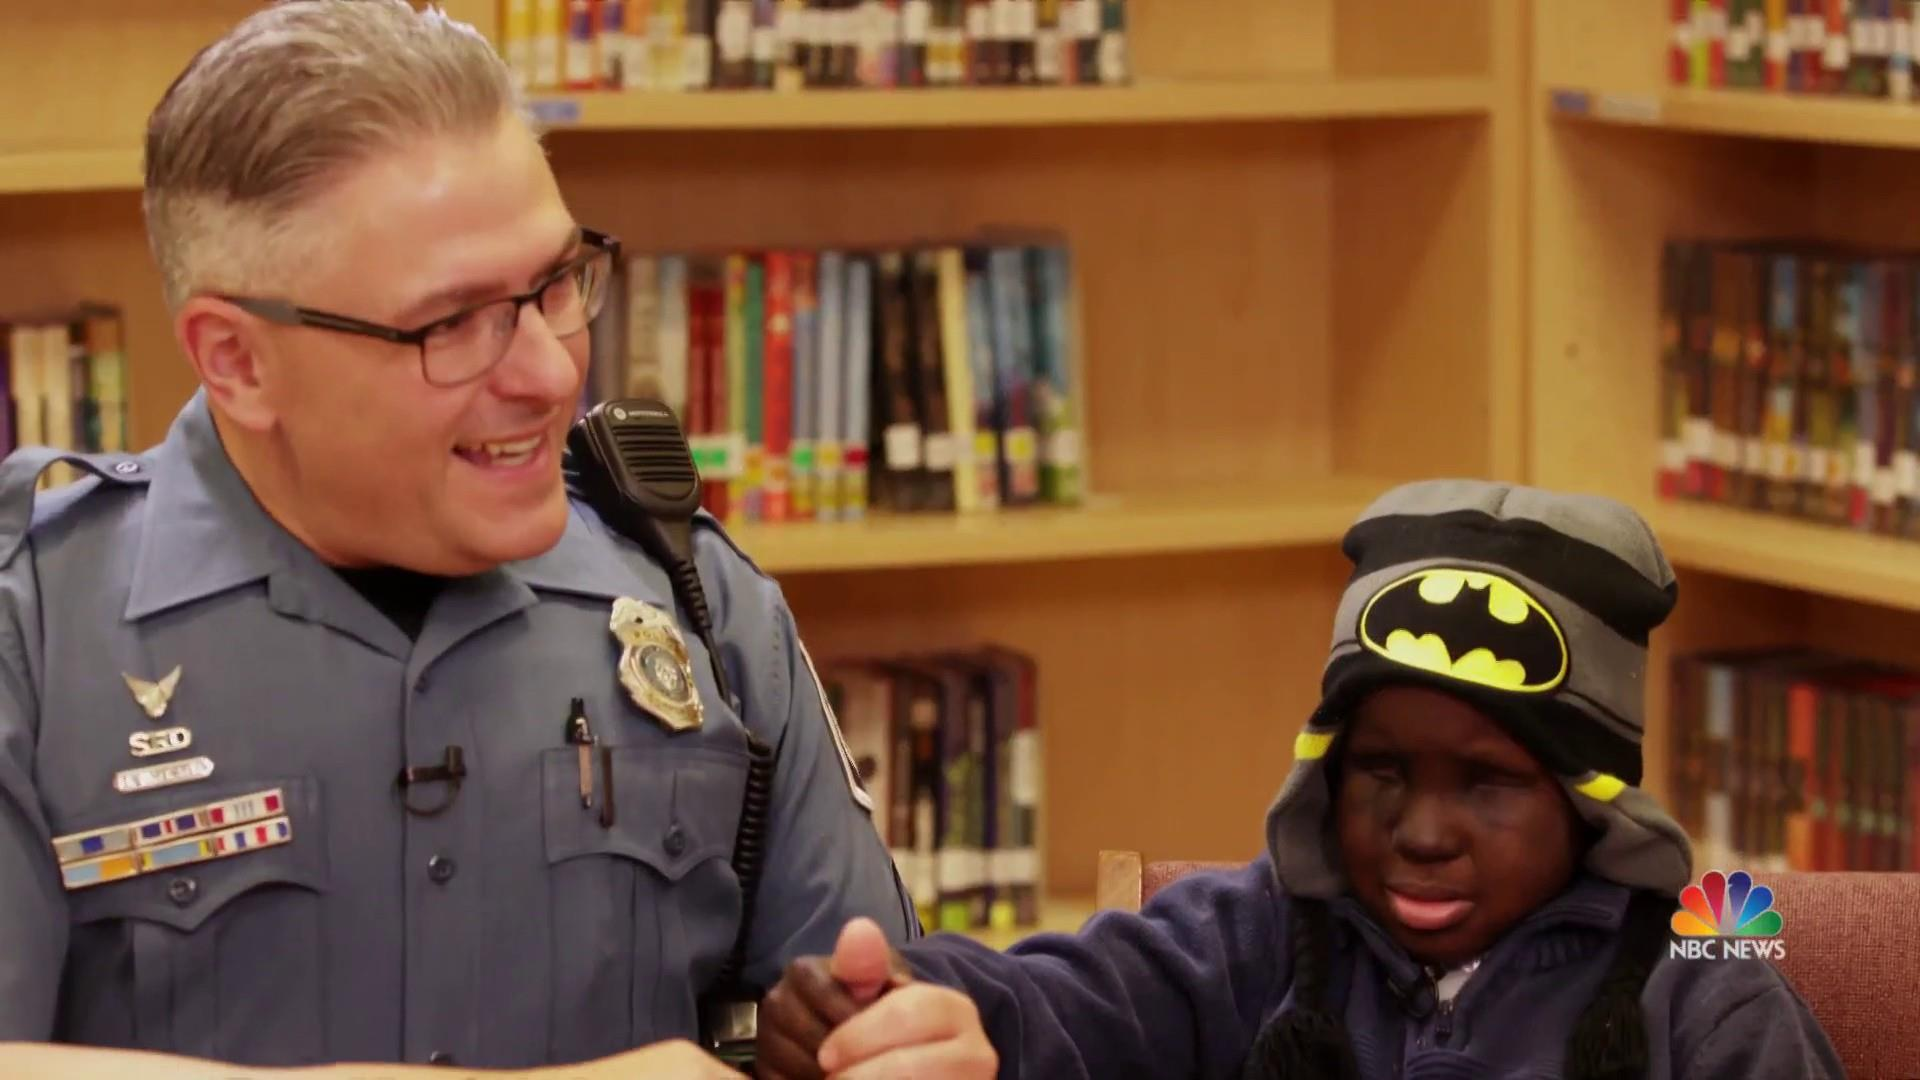 Heartwarming friendship between a boy and his school resource officer